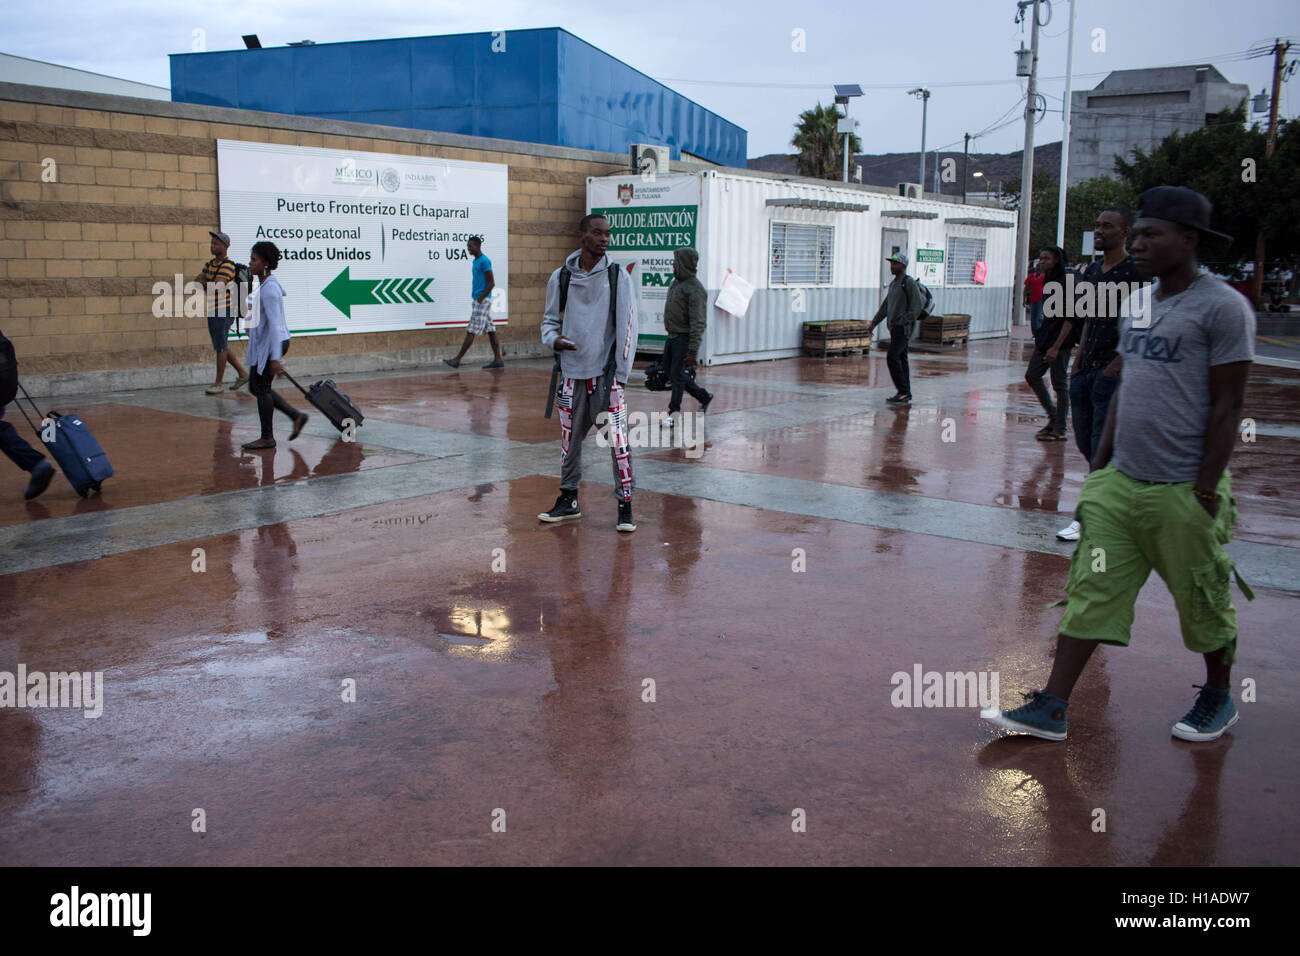 Tijuana, BAJA CALIFORNIA, MEXICO. 20th Sep, 2016. Haitian and African migrants seeking to enter the United States Stock Photo